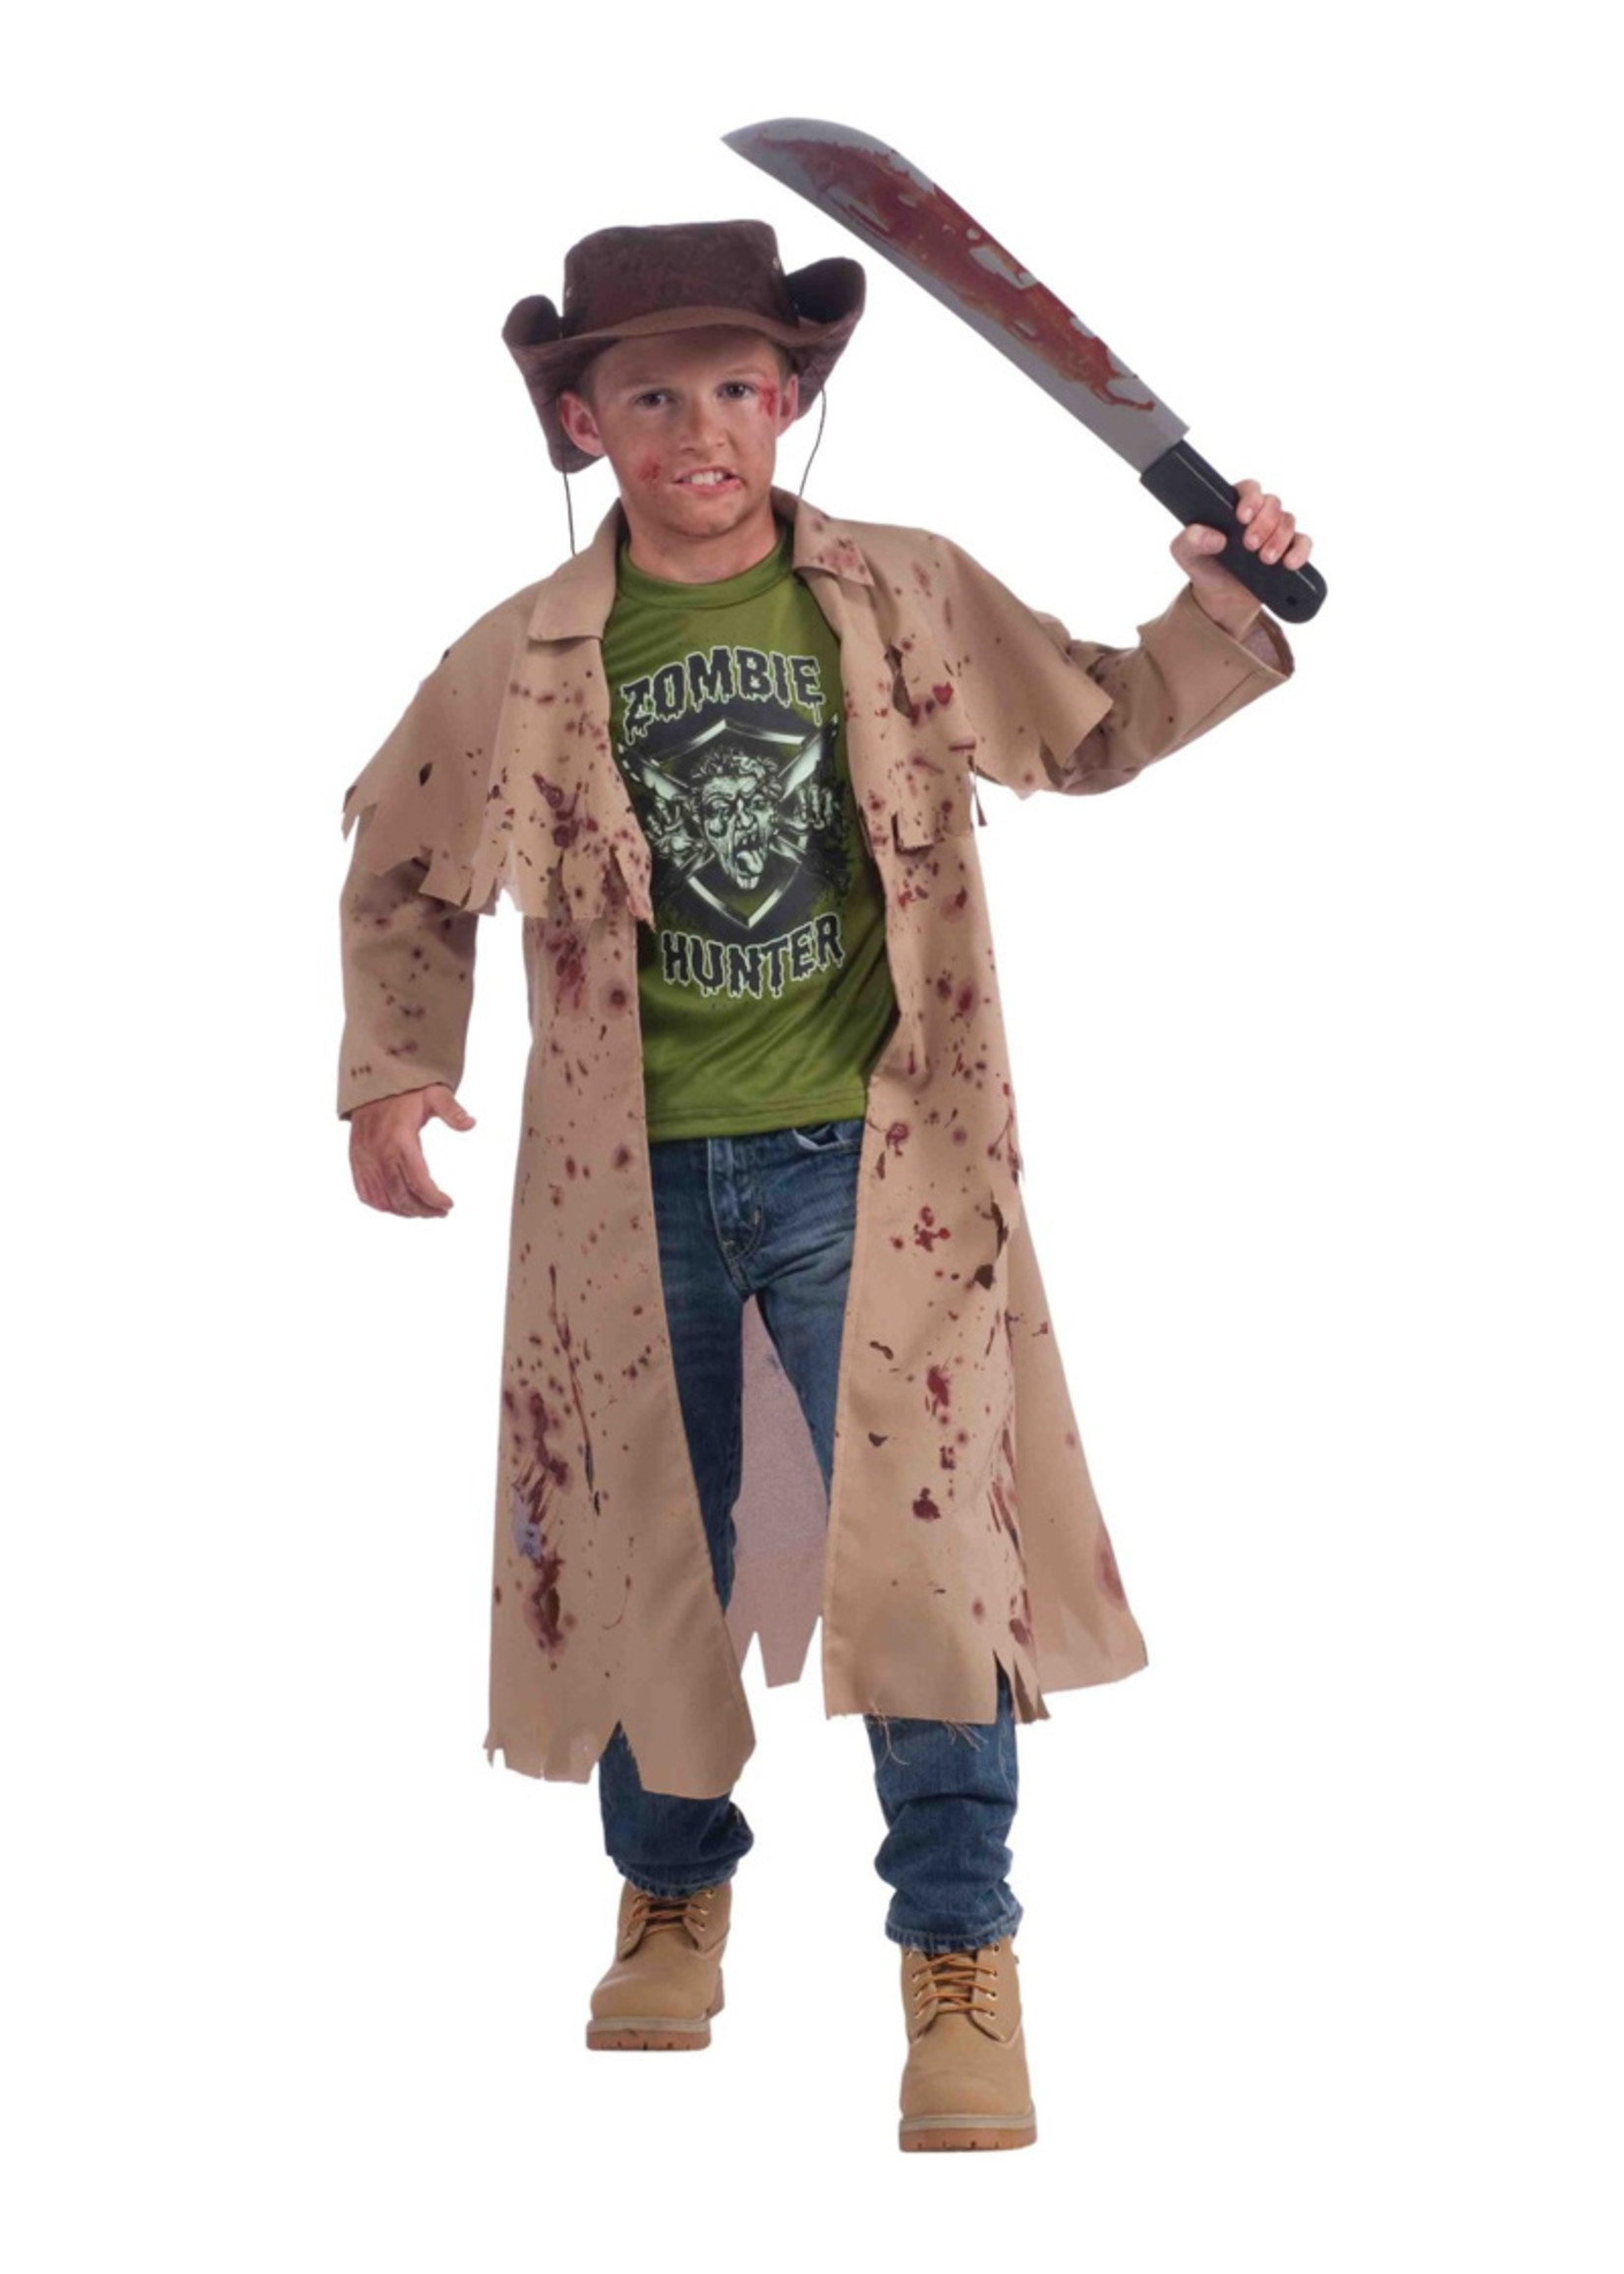 Zombie Hunter Costume - Boys